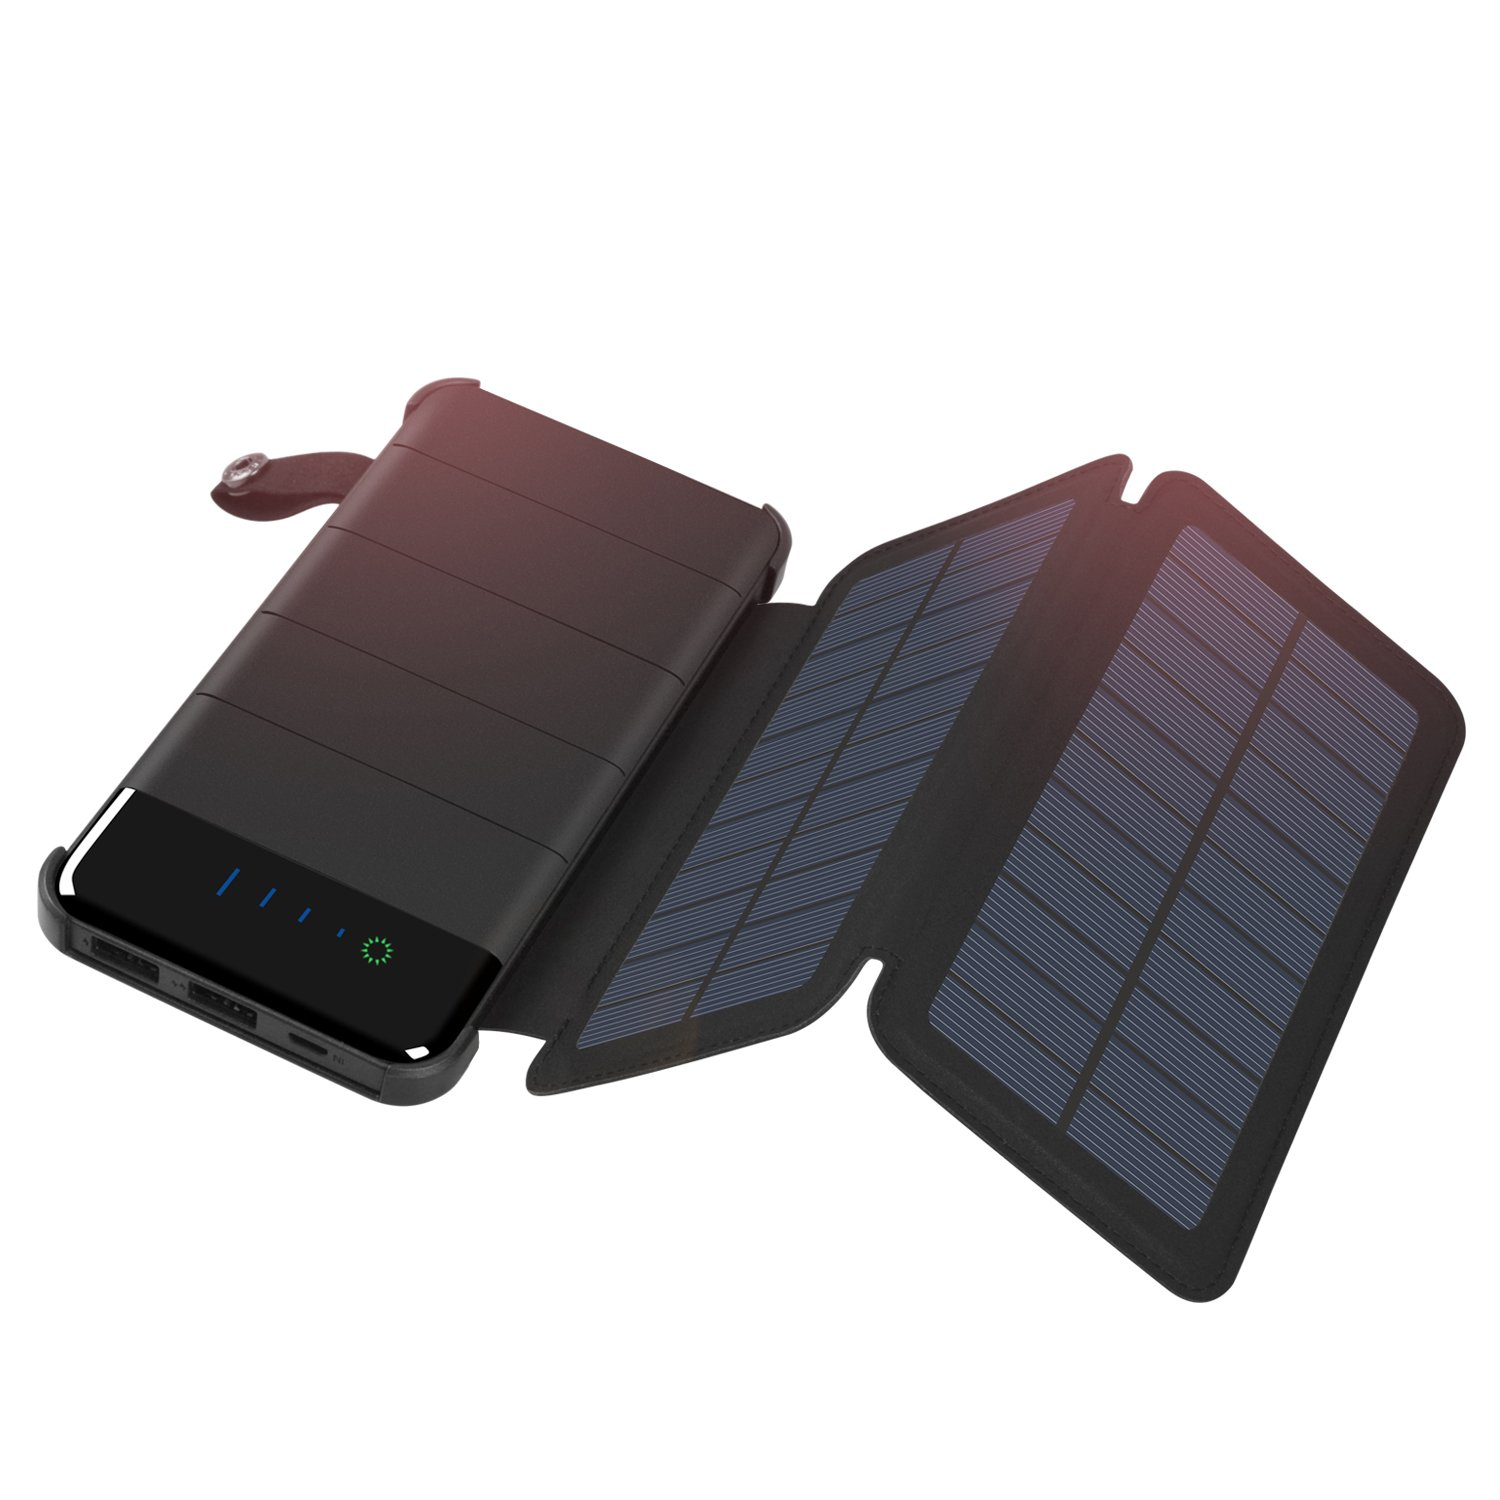 Solar Charger 10000mAh, ADDTOP Power Bank Waterproof Battery Pack Portable  phone charger for iPhone, iPad, Samsung, and More Smartphone